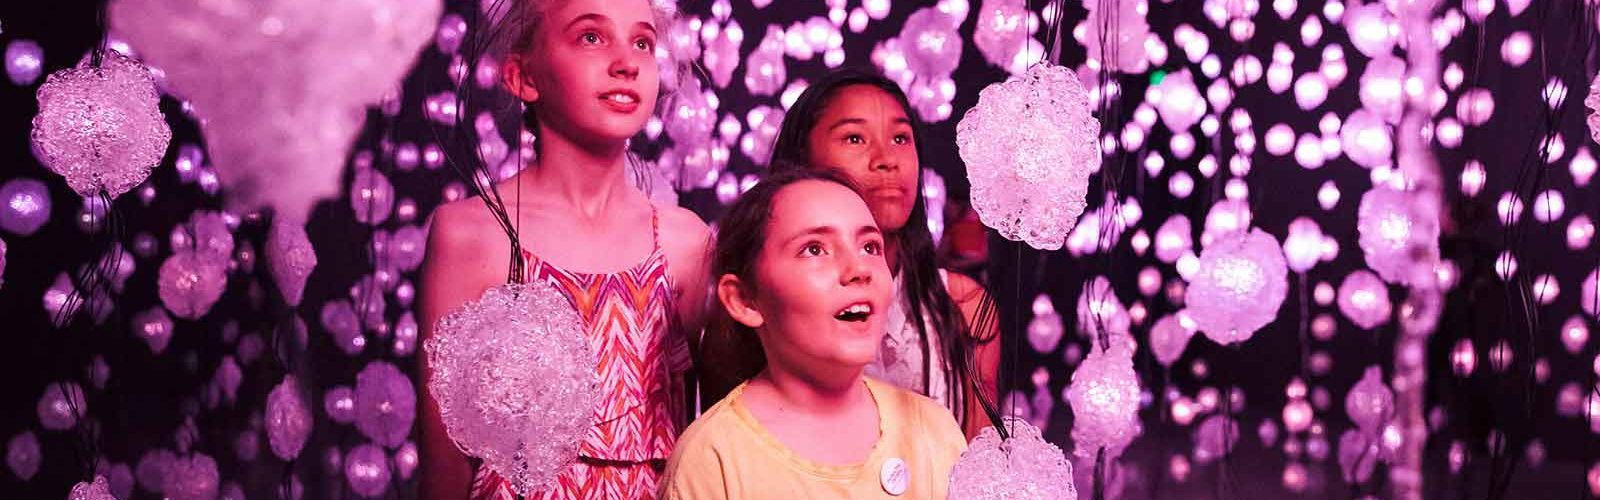 Kids exploring the 'Pixel Forest' on October 30, 2017, the opening night of Pipilotti Rist's exhibition at the Museum of Contemporary Art, Sydney. Photo: Daniel Boud